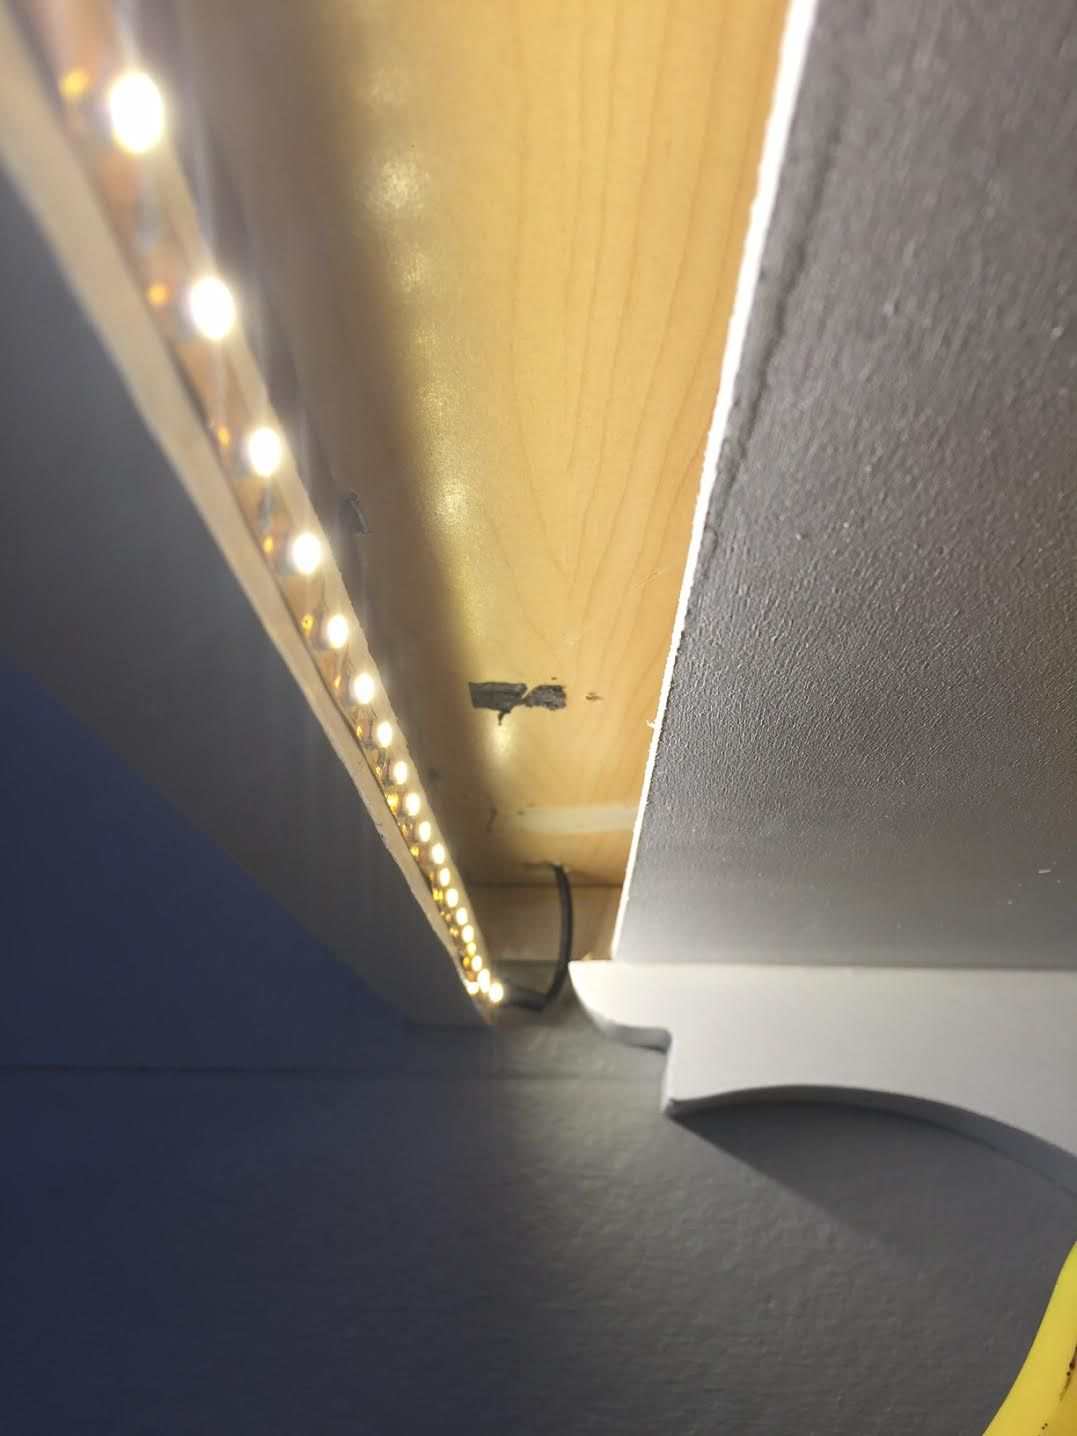 Diy Upper And Lower Cabinet Lighting Over Cabinet Lighting Led Lighting Diy Diy Kitchen Lighting